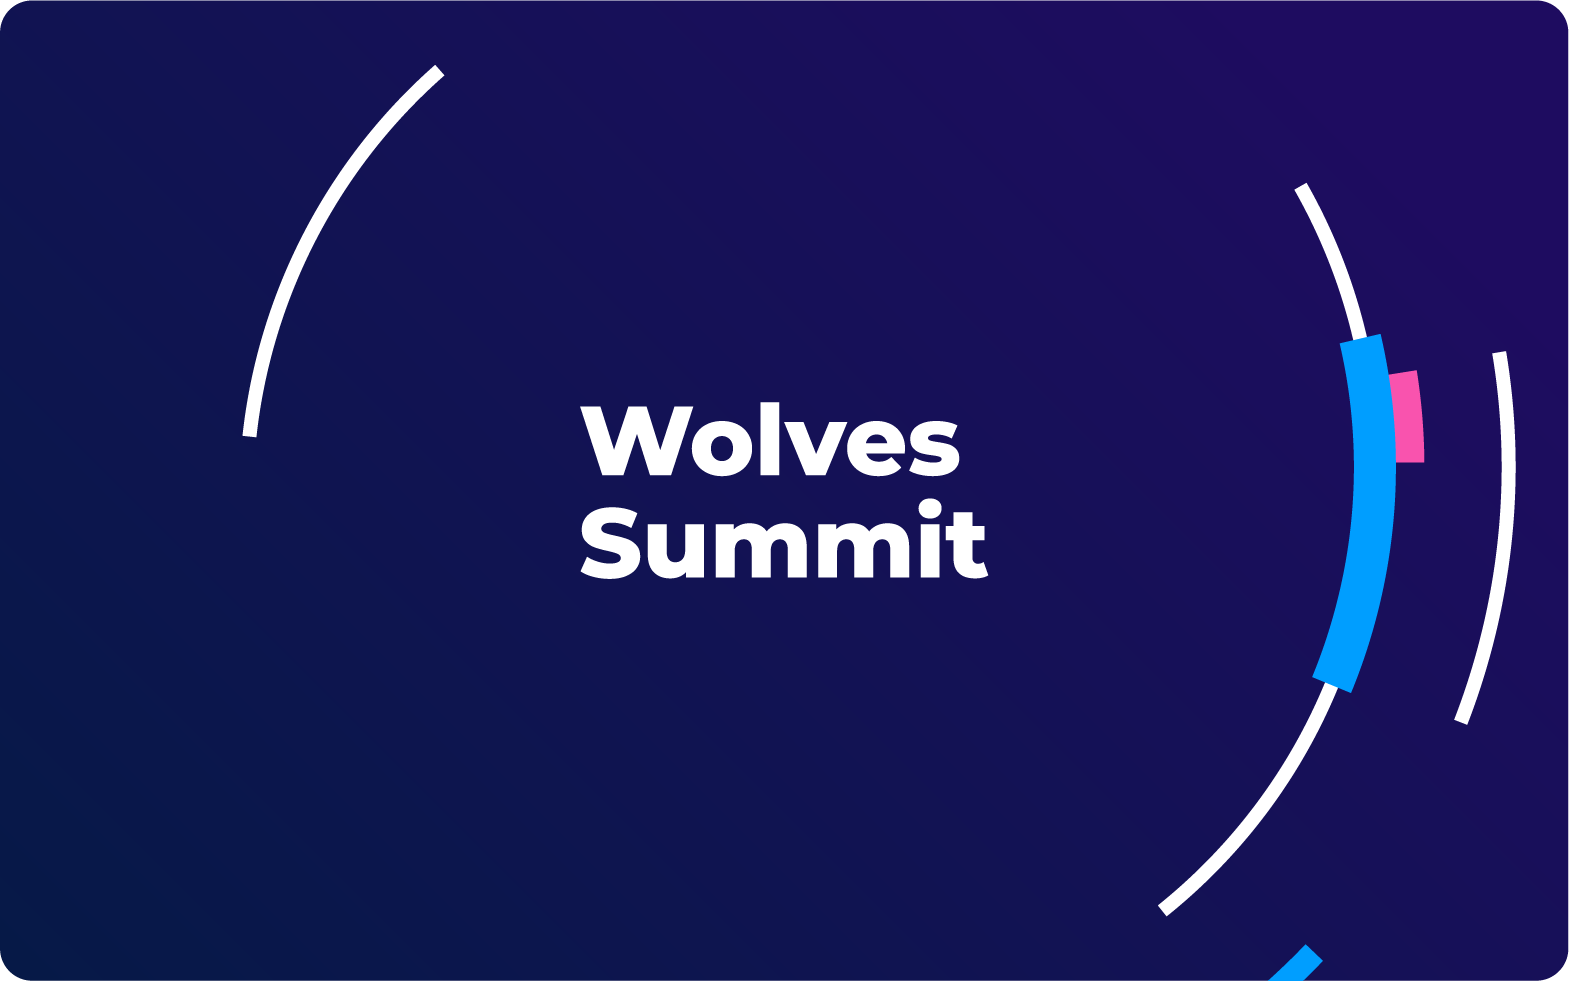 Meet Wolves Summit, a tech conference whose 8-day switch from physical to virtual resulted in a partnership with Hopin